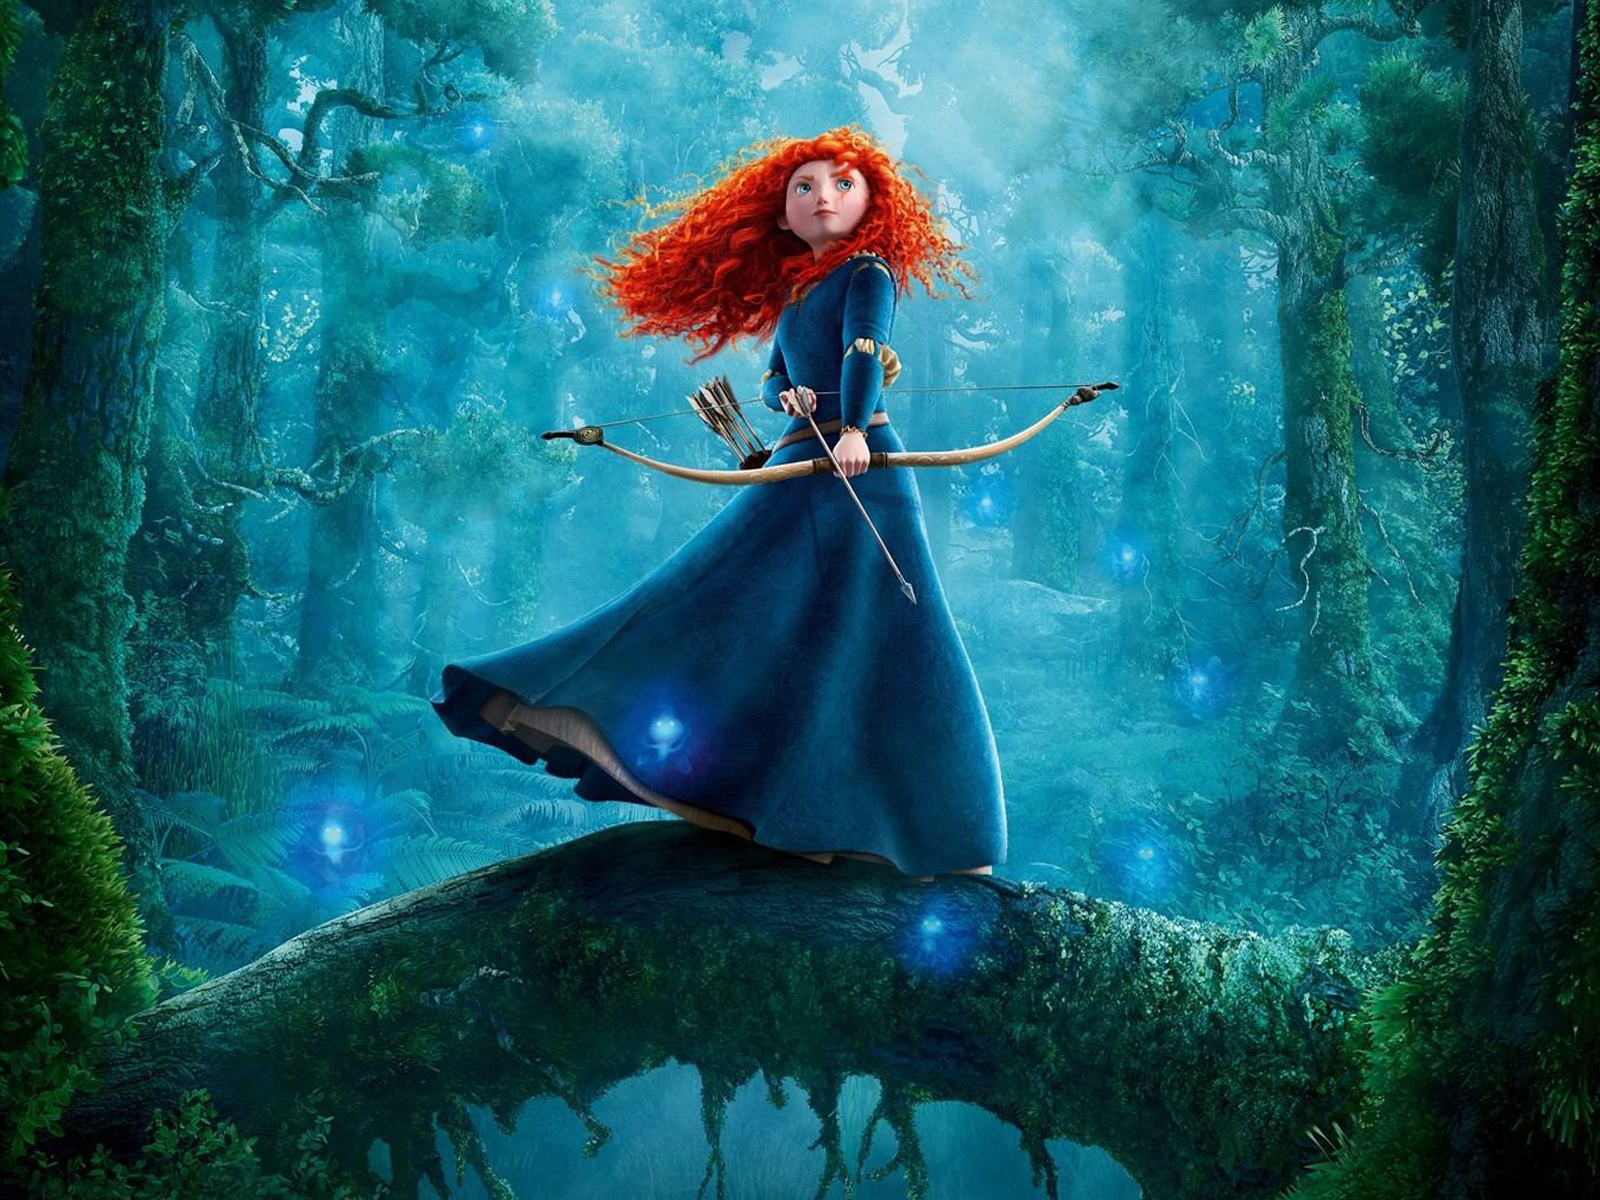 brave merida, disney princess